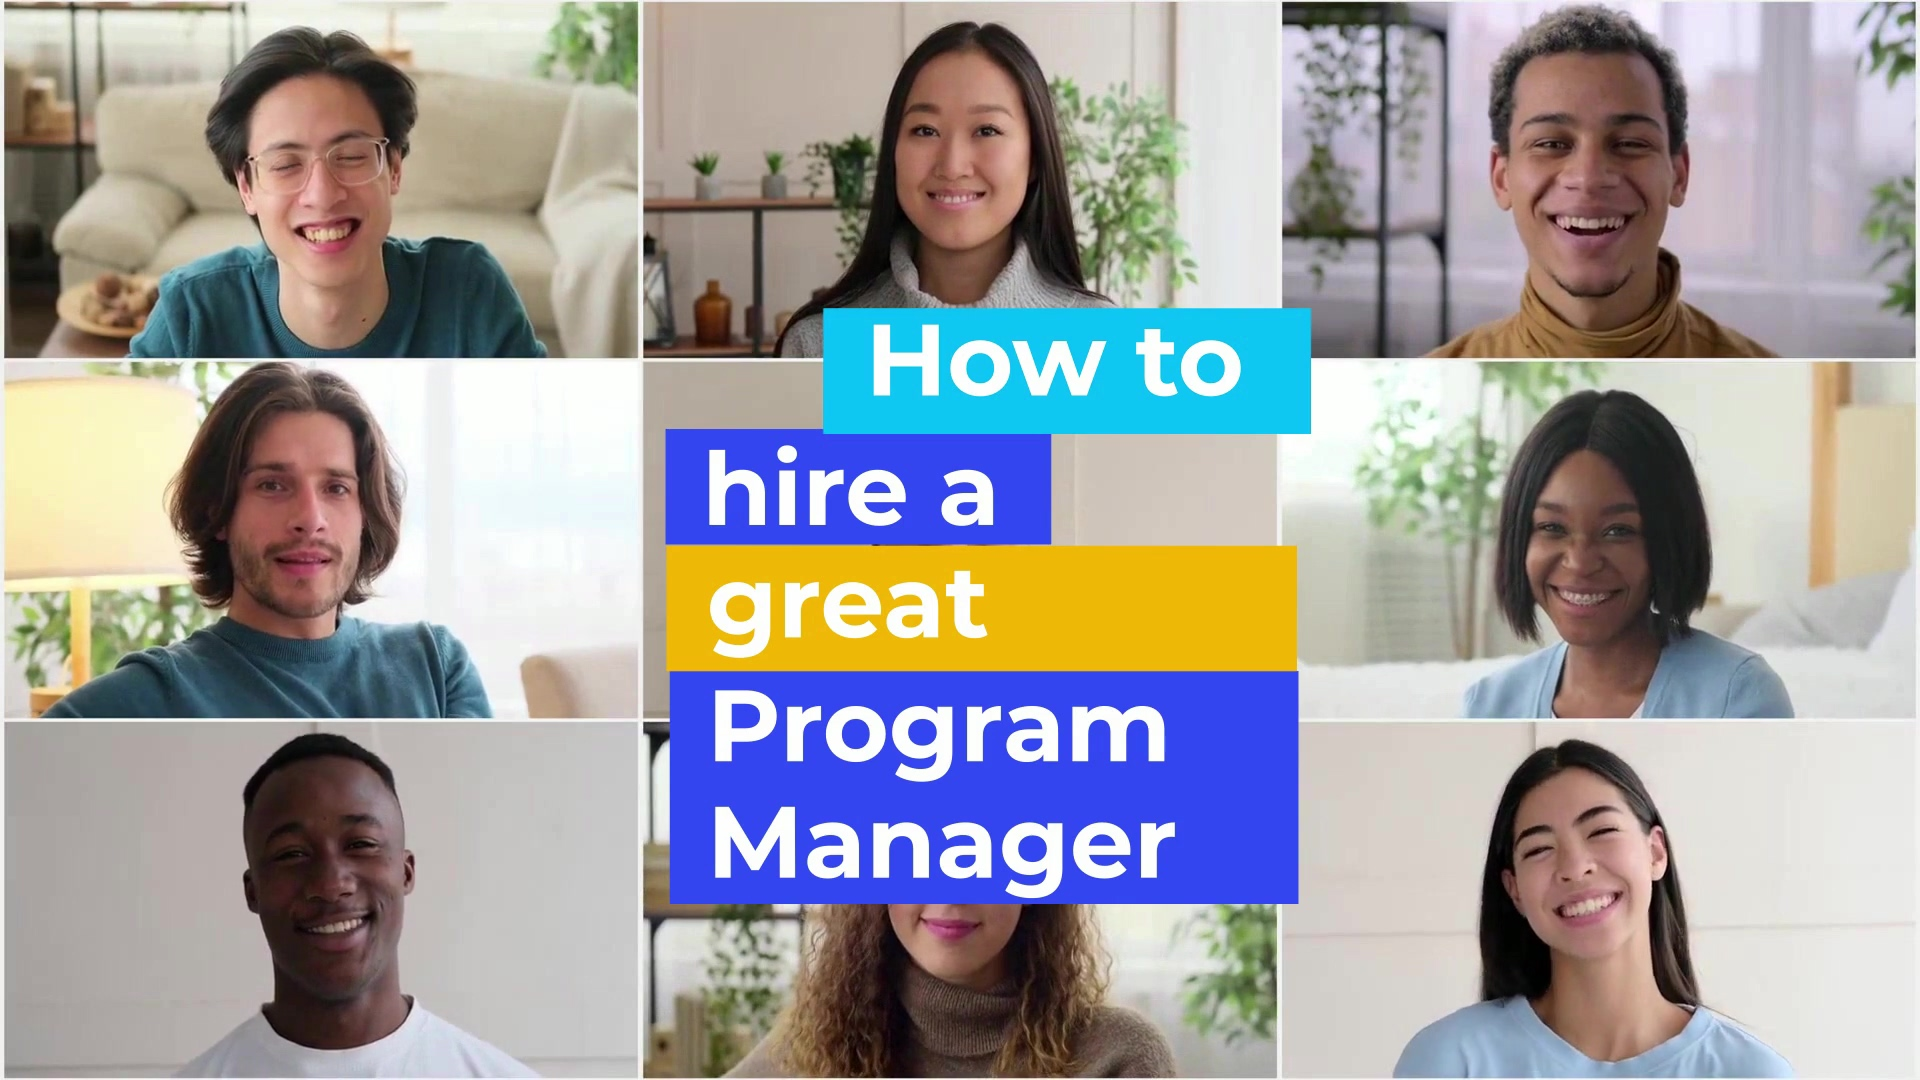 Quick Hiring Tips to Hire A Program Manager